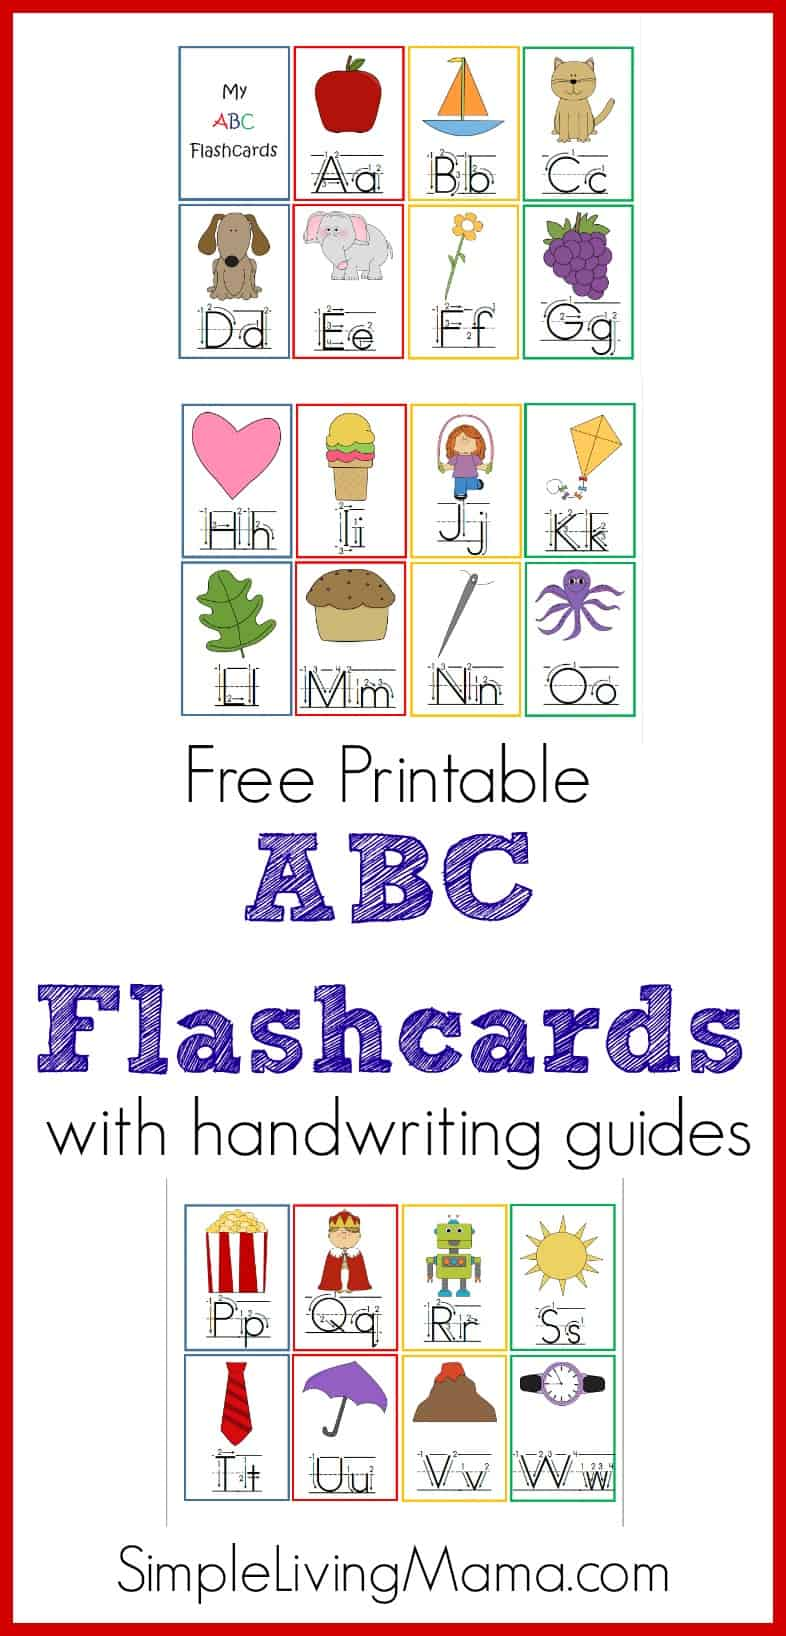 photograph relating to Abc Flash Cards Printable named Printable ABC Flashcards - Homeschool Printables for No cost